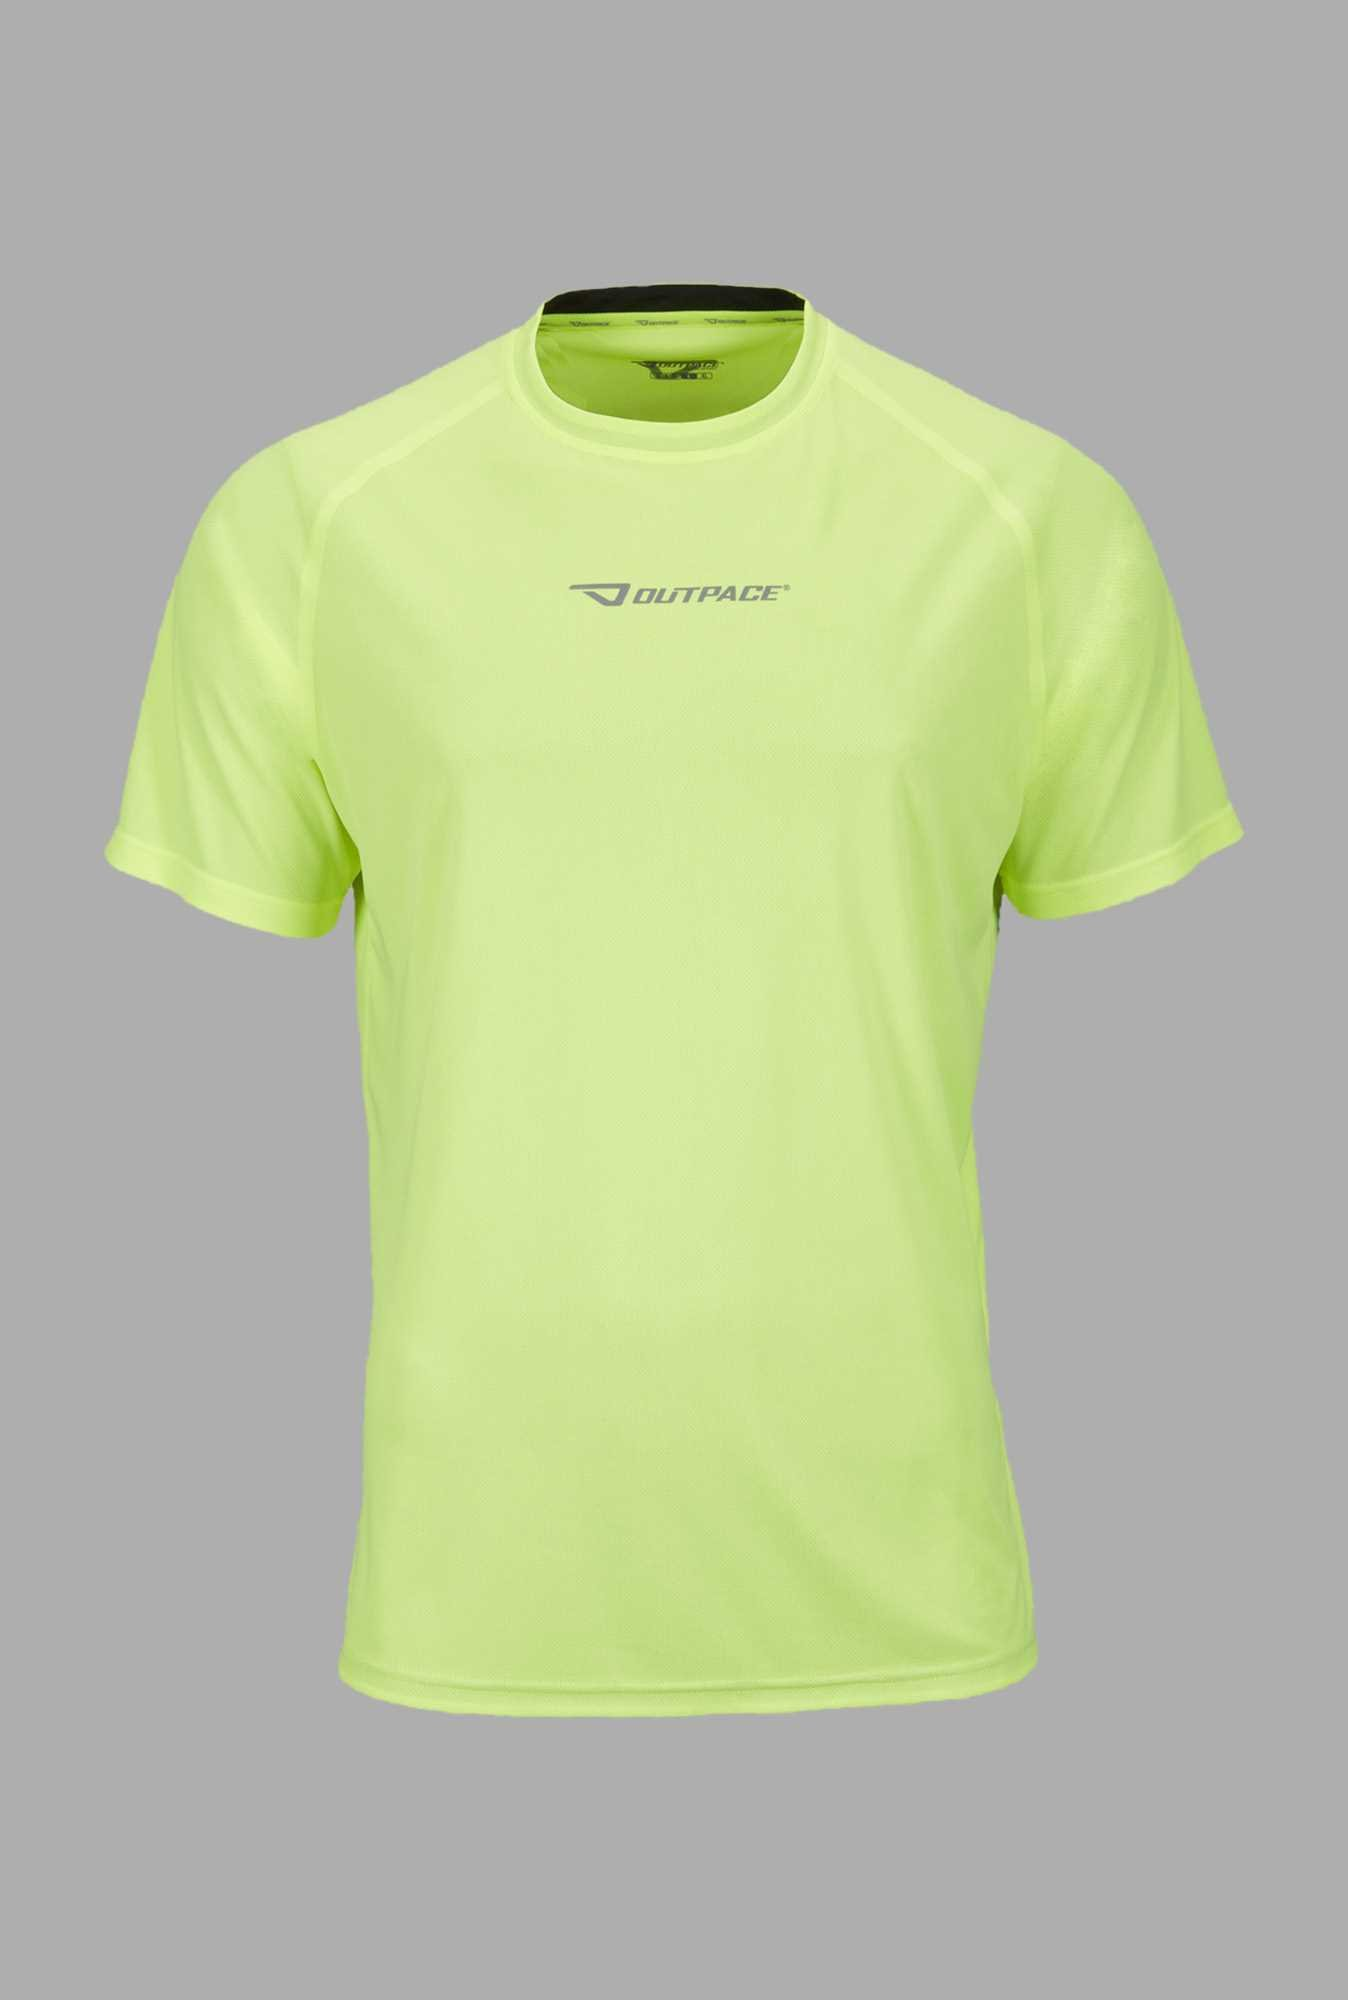 Outpace Lime Solid Running T Shirt